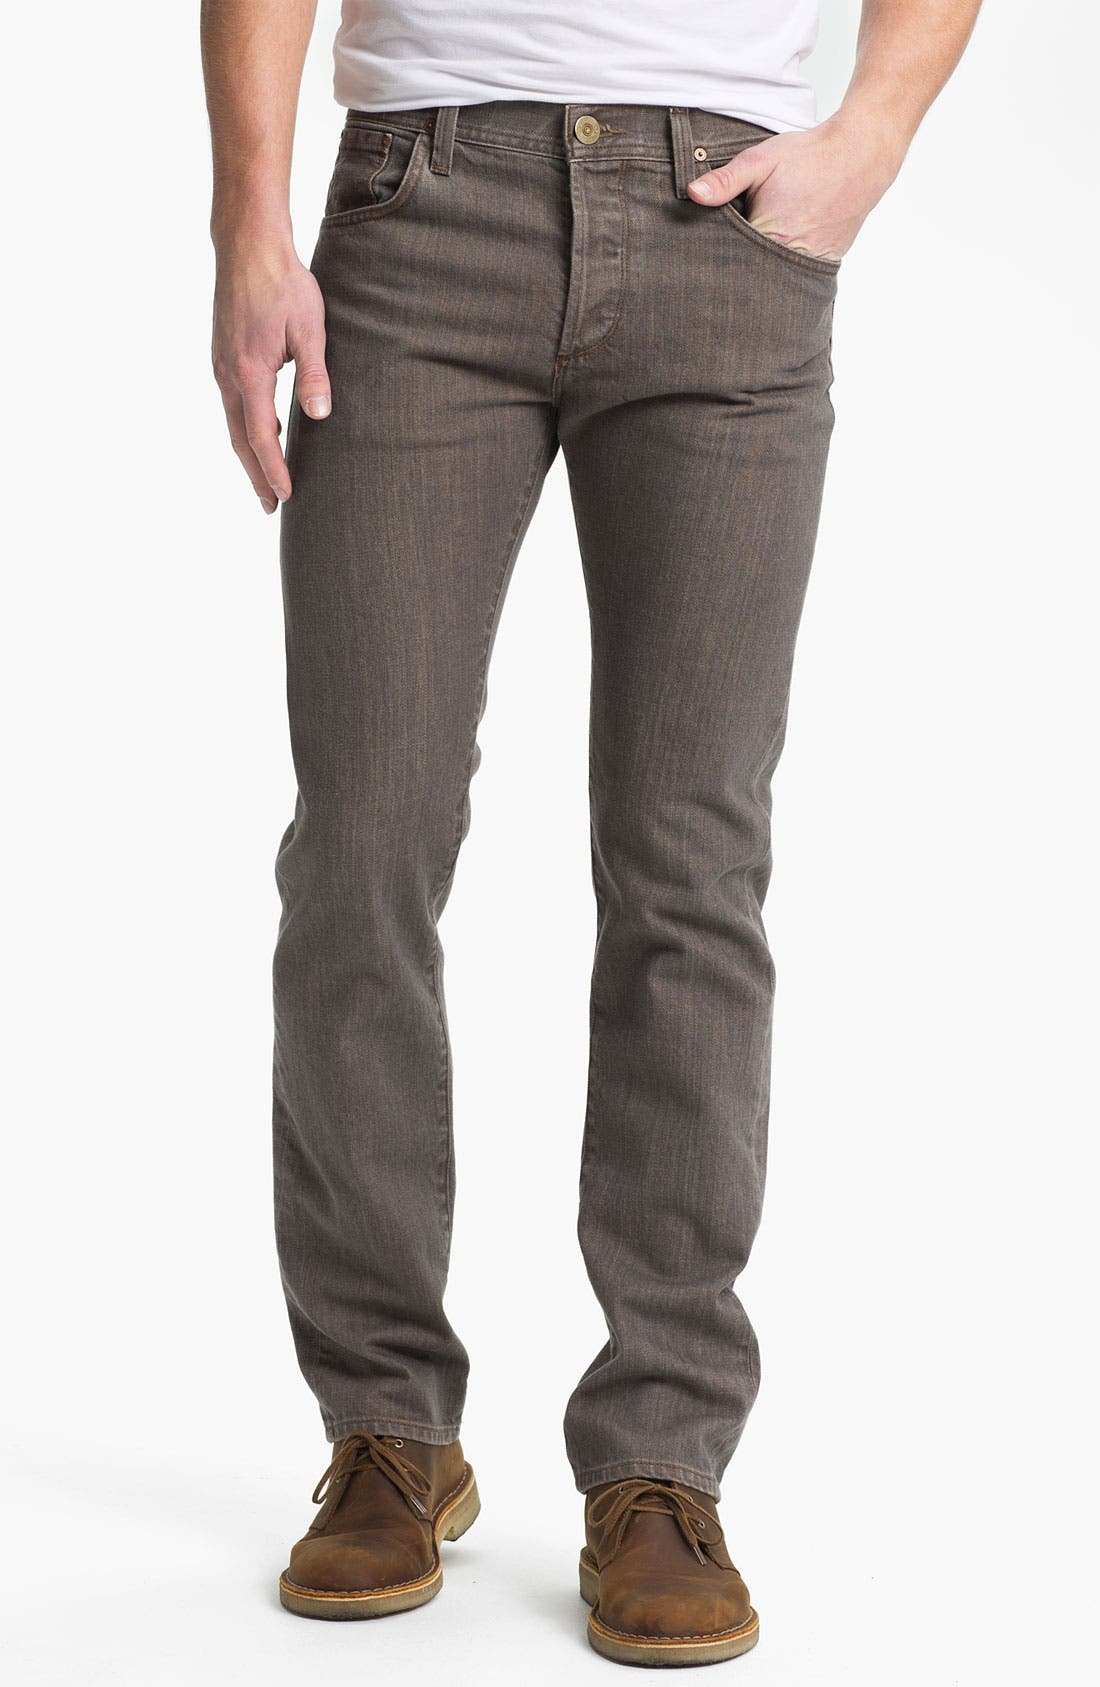 Main Image - Citizens of Humanity 'Core' Slim Fit Jeans (Mojave Desert) (Online Only)